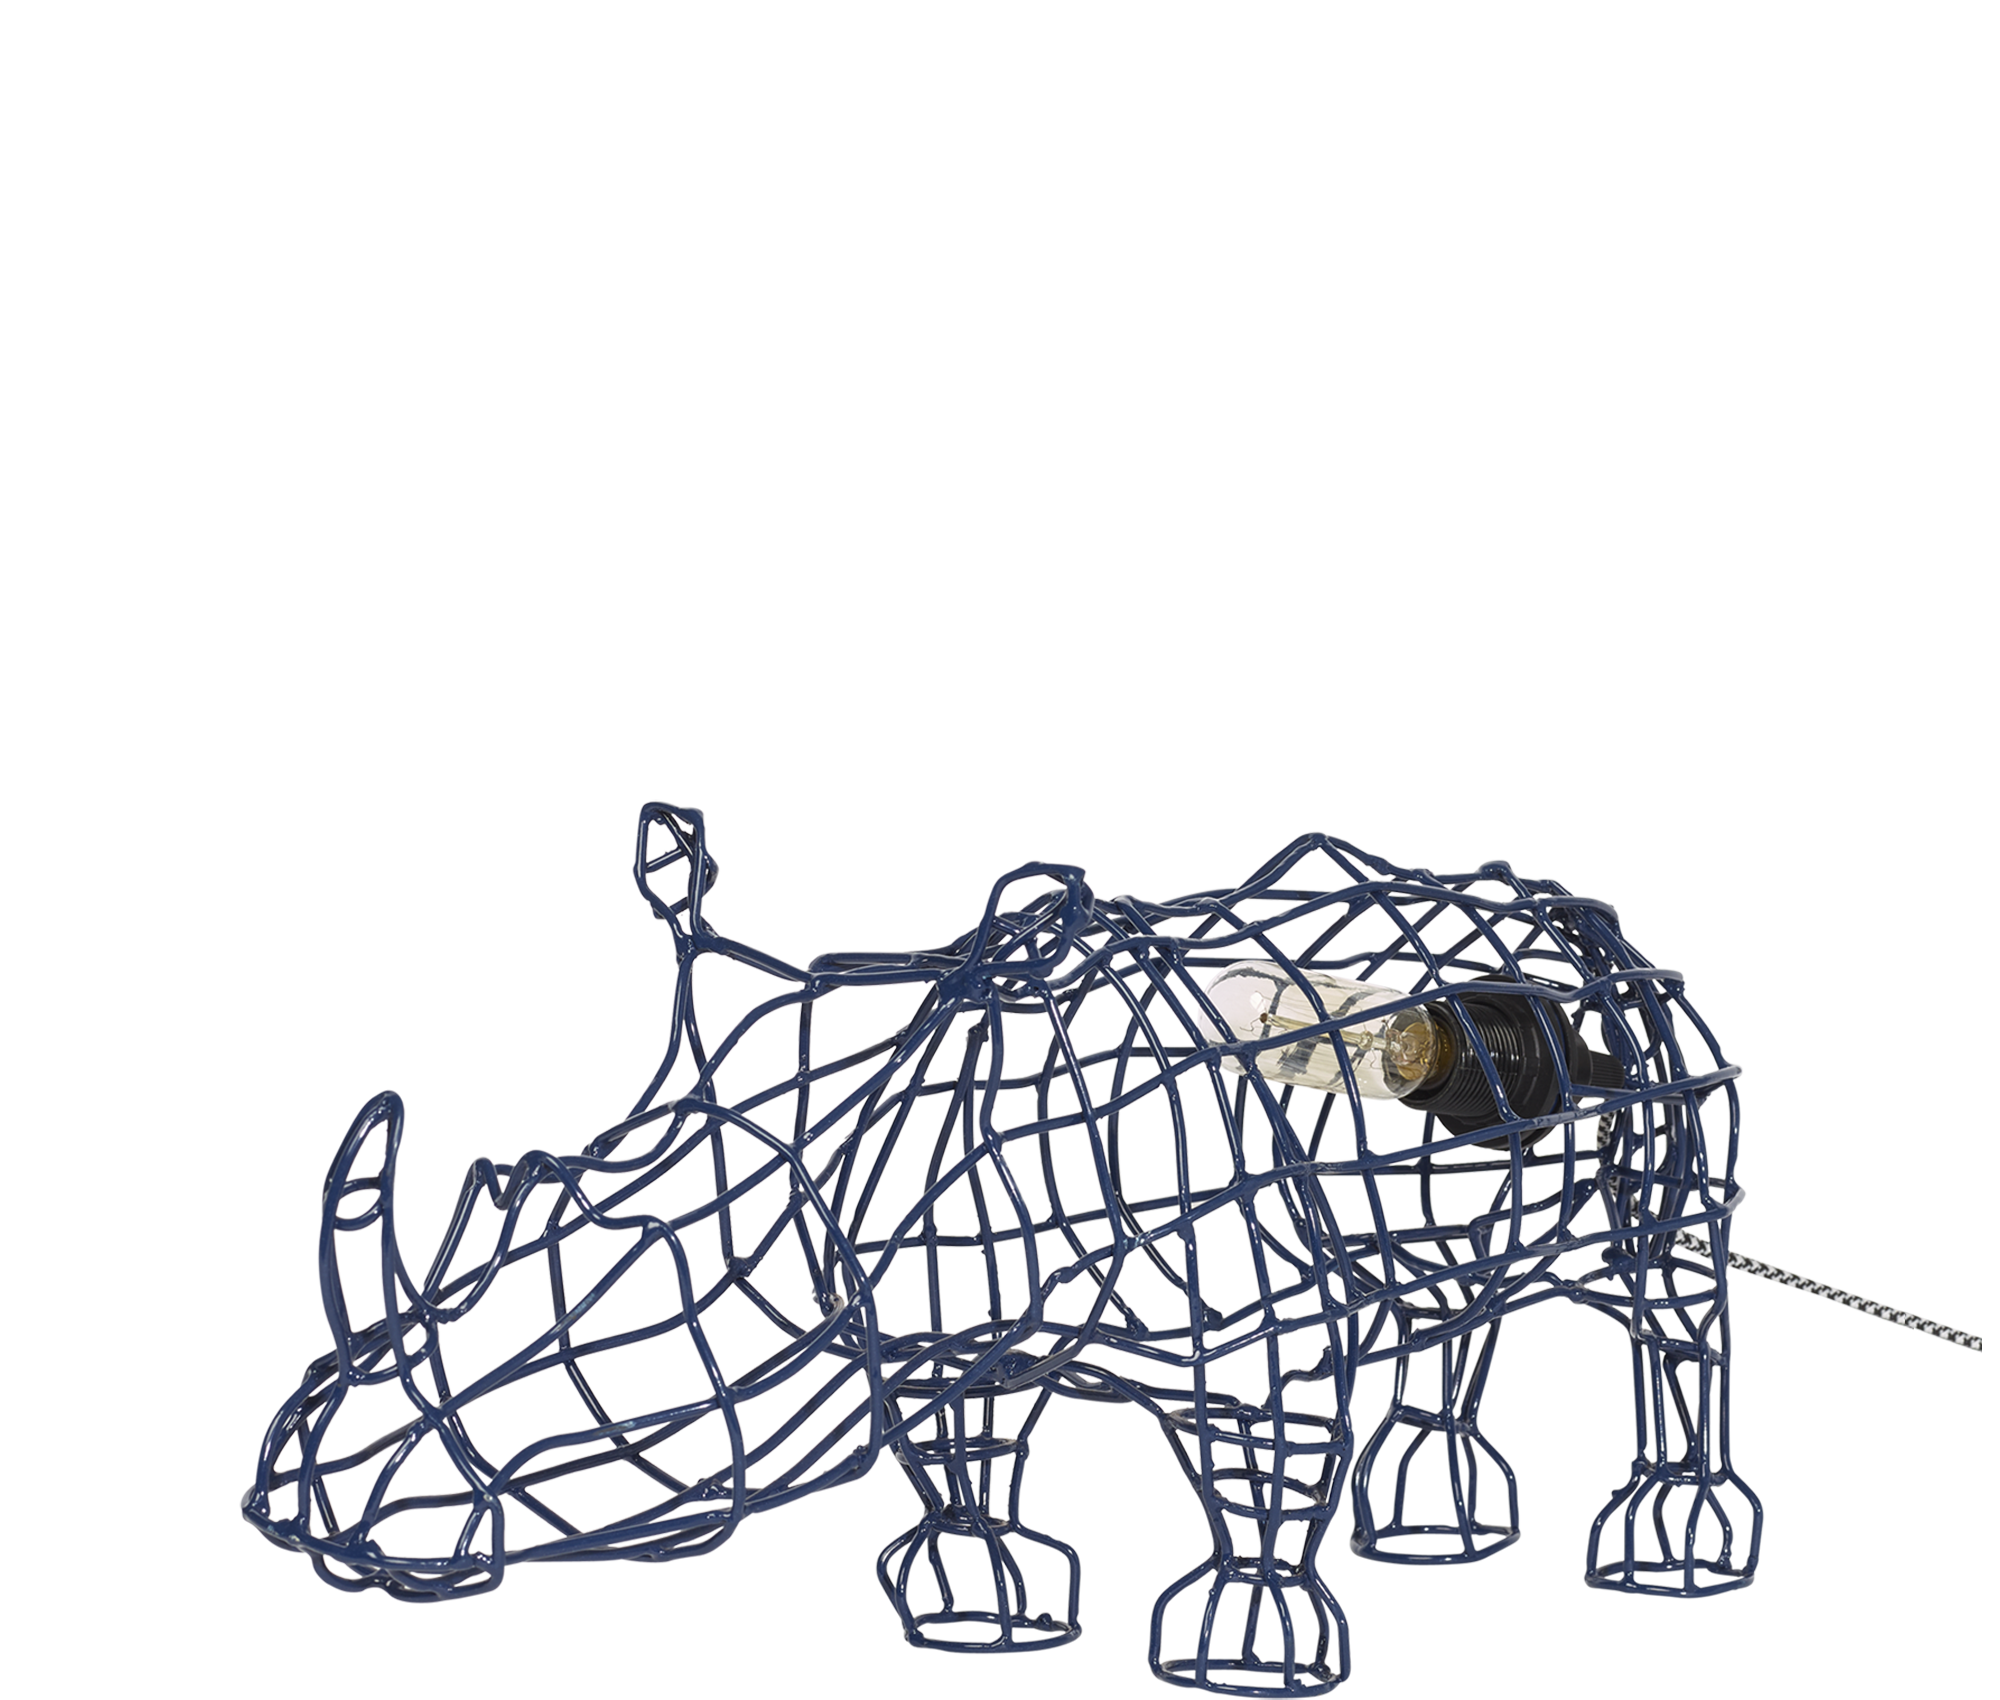 products/rhino-wire-lamp-home-decor-16615457685604.png